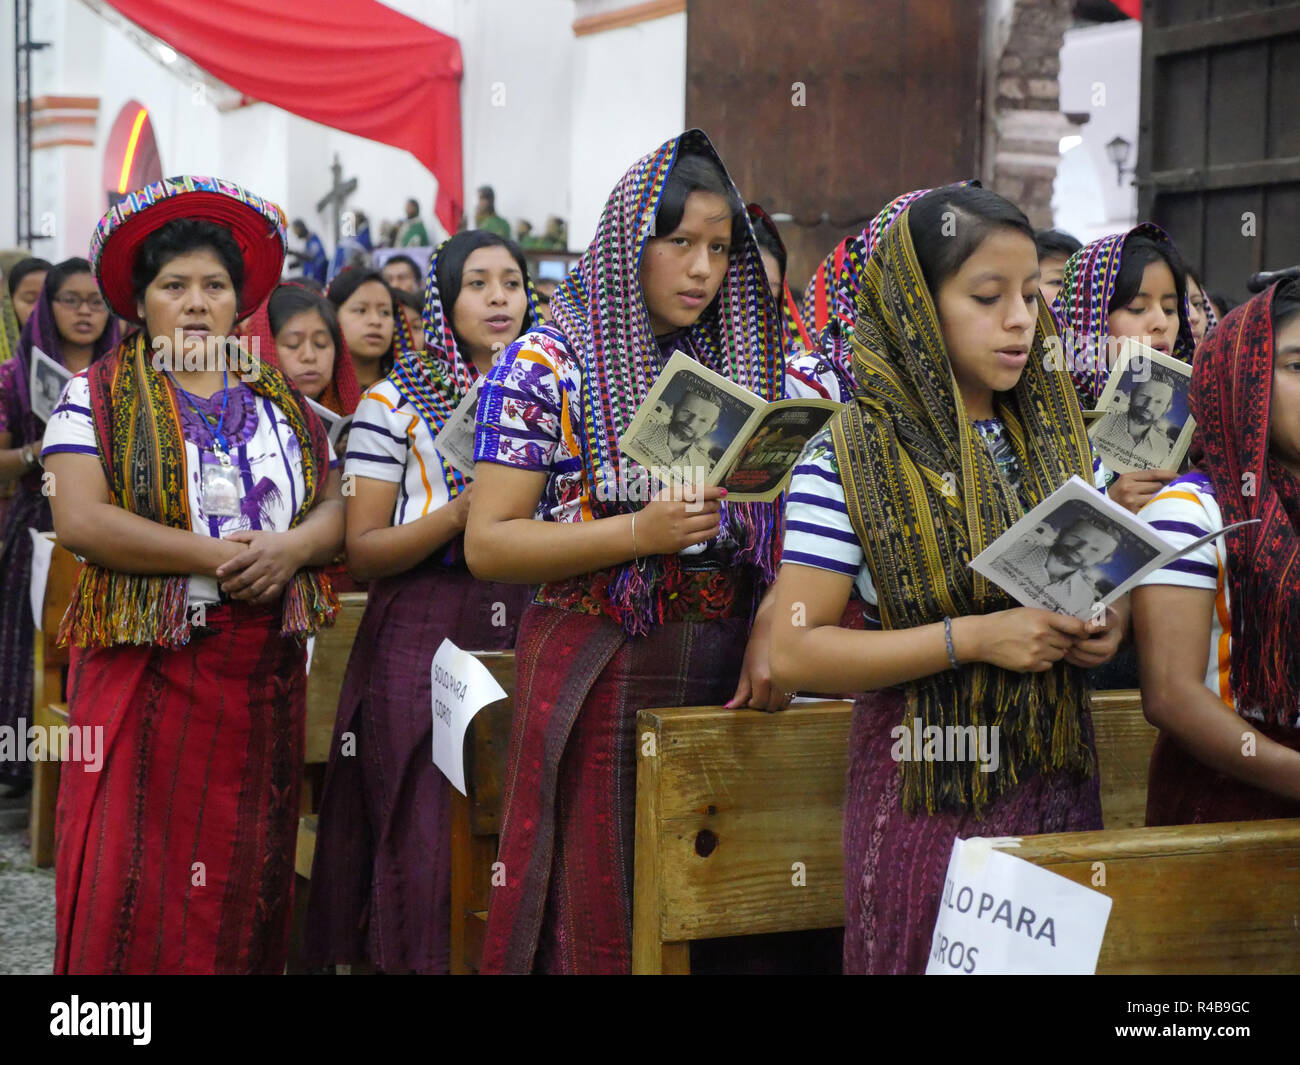 GUATEMALA  Ceremonies concerning the beatification of Father Stanley Francis Aplas Rother, who was murdered in 1981, at Santiago de Atitlan. - Stock Image